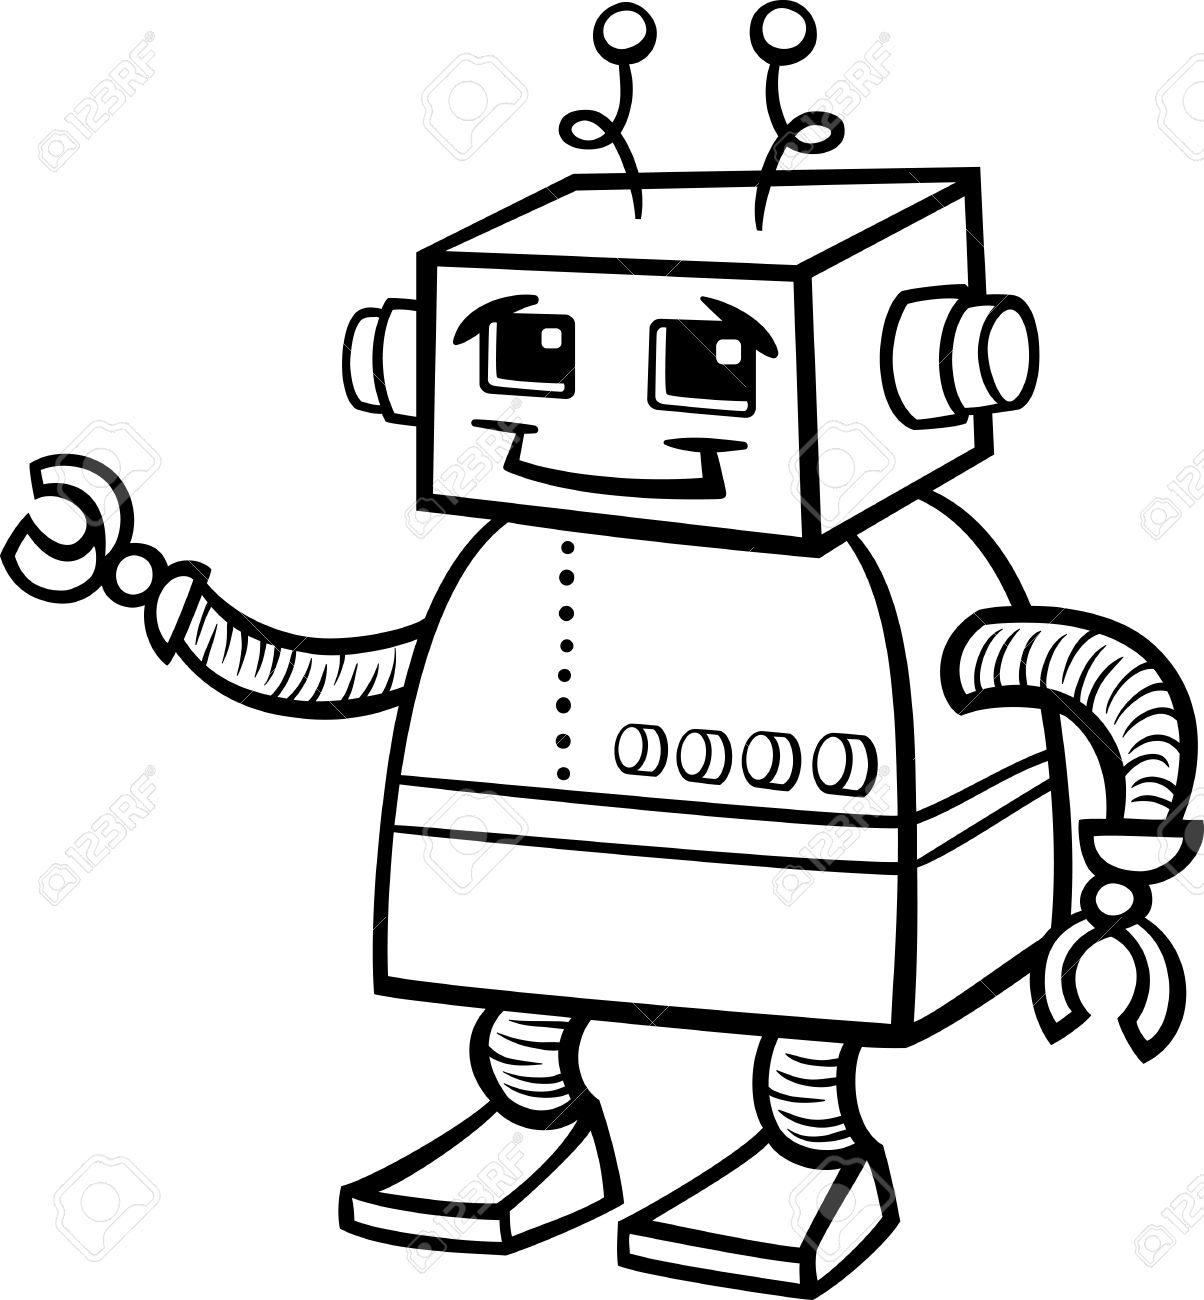 1204x1300 Robot Clipart Black And White